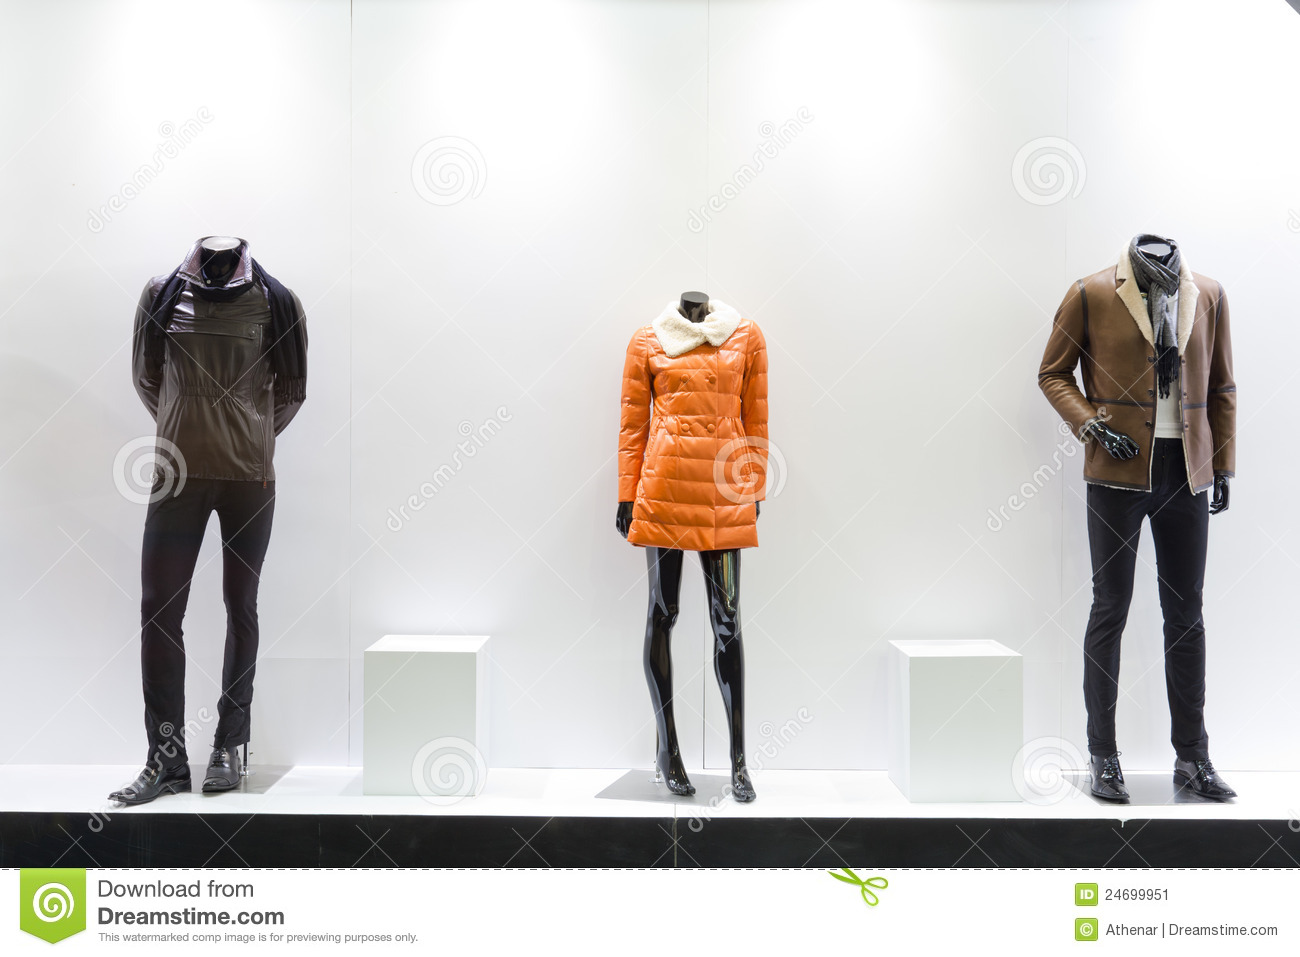 Modern hotel room interior stock photo image 18197840 - Modern Hotel Room Interior Mannequins In A Store Stock Image